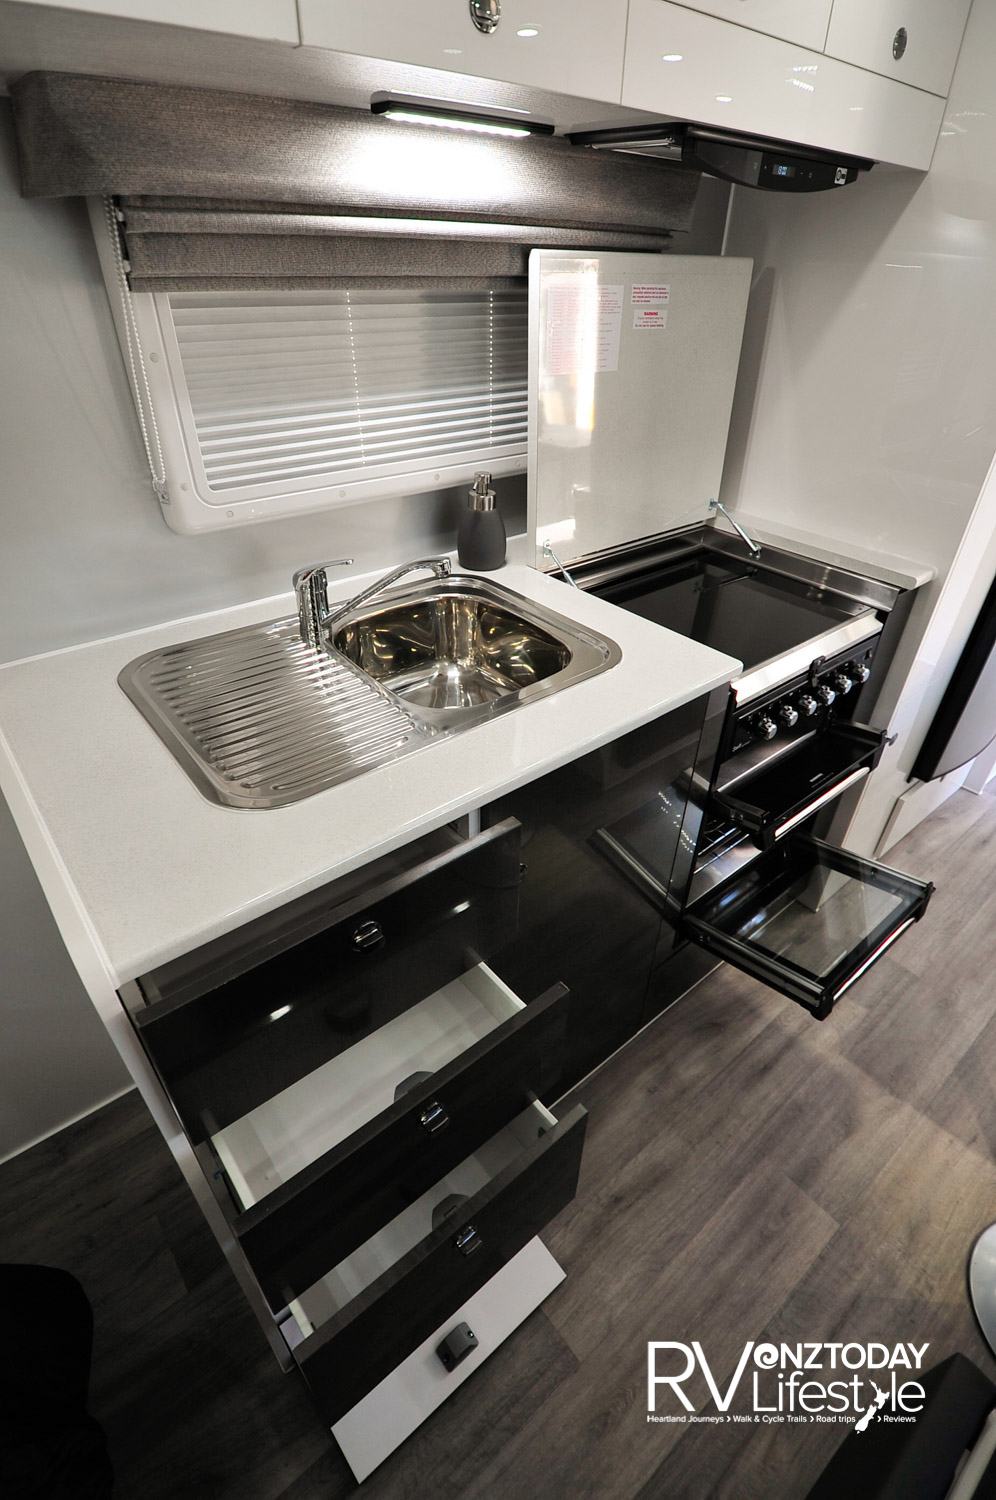 Drawers and cupboards under bench, stainless steel insert sink with drainer, the full gas oven with separate grill has three gas burners and one electric hotplate – a glass lid as well as being inset into the bench top so a benchtop lid for the unit could be fitted